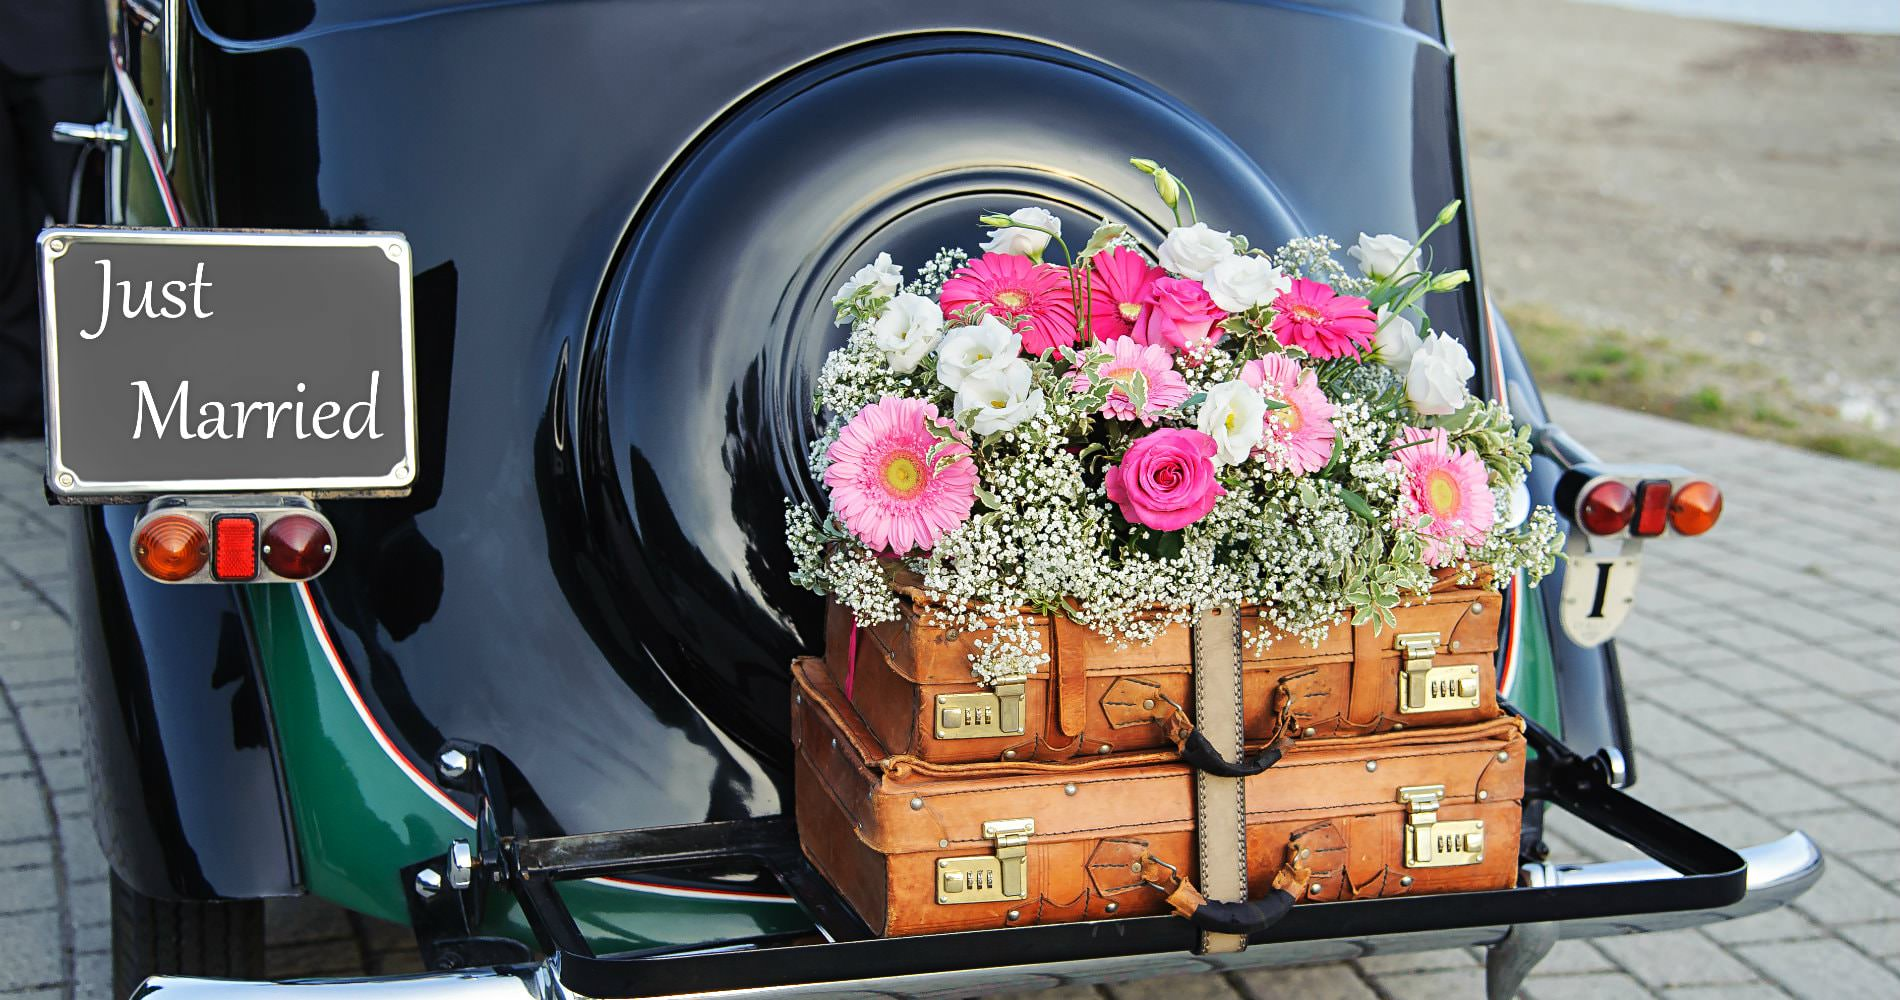 Shiny black antique car with brown trunks, fresh pink flowers, and a Just Married sign on the tailgate